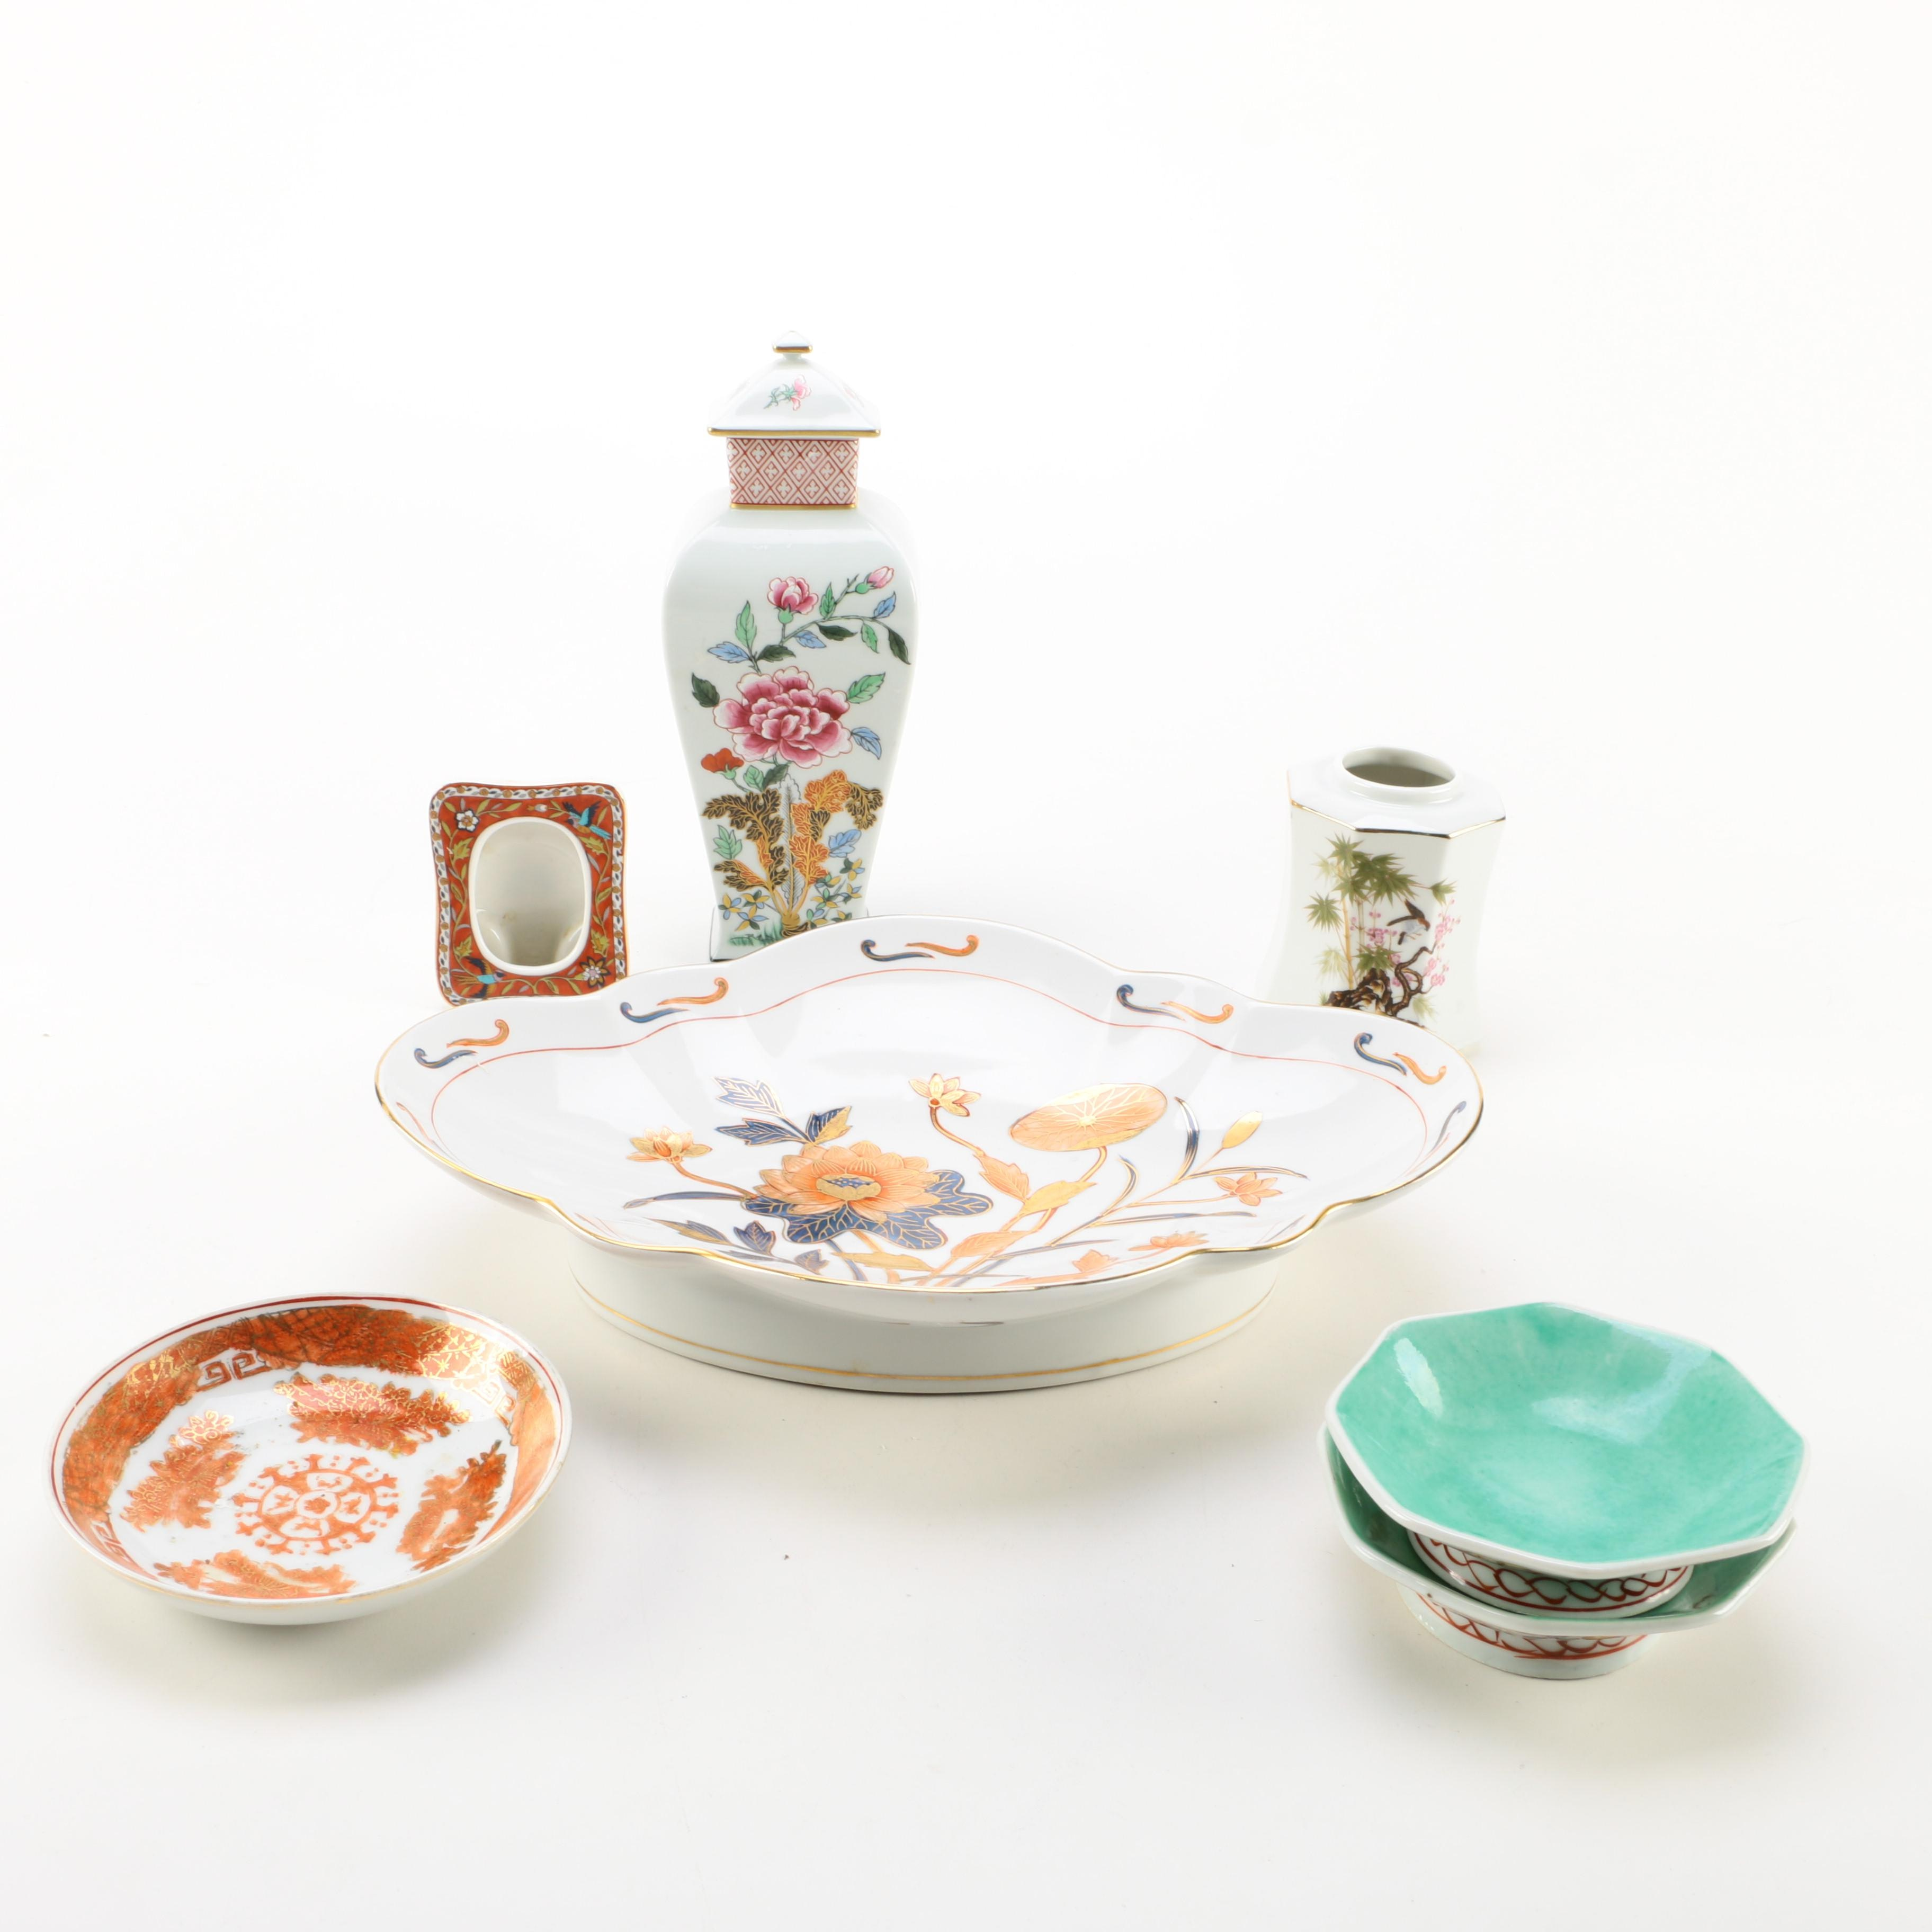 East Asian and Chinoiserie Ceramic Décor and Tableware Items